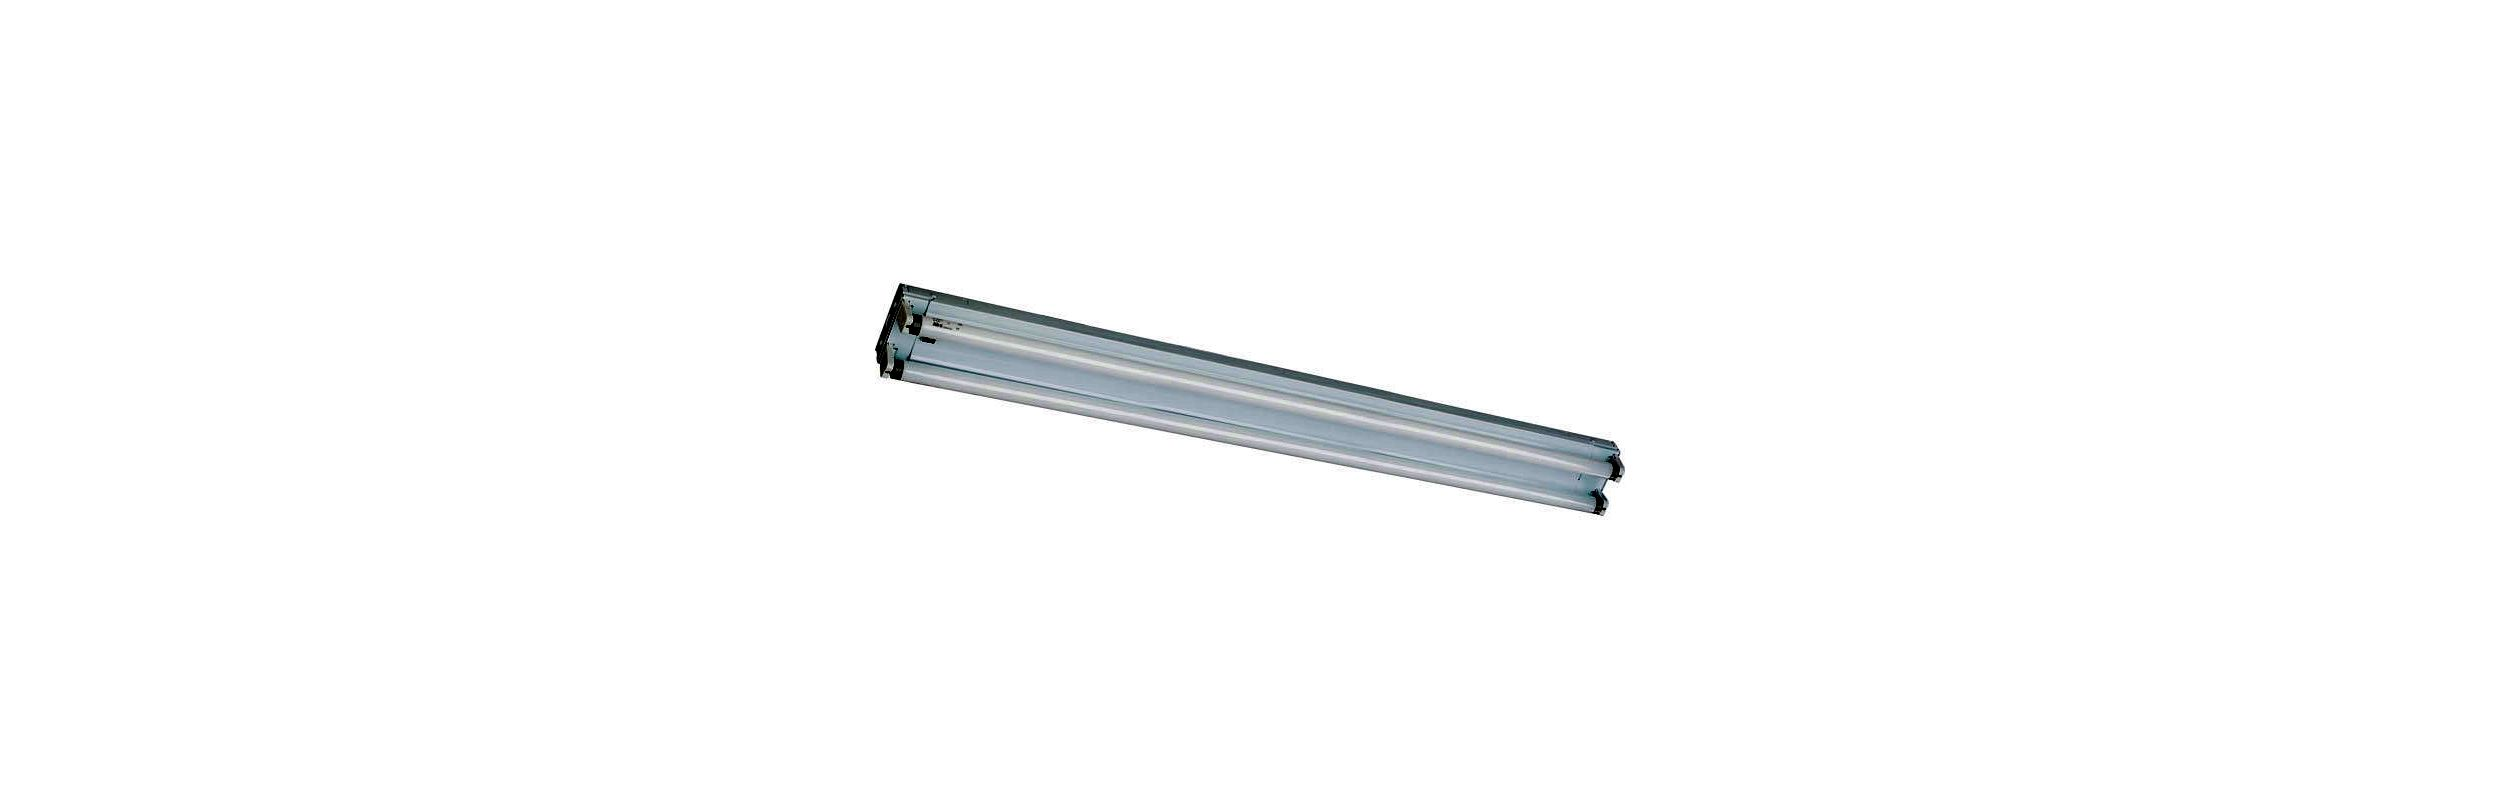 Quorum International Q89324-2 2 Light Flushmount Fluorescent Fixture